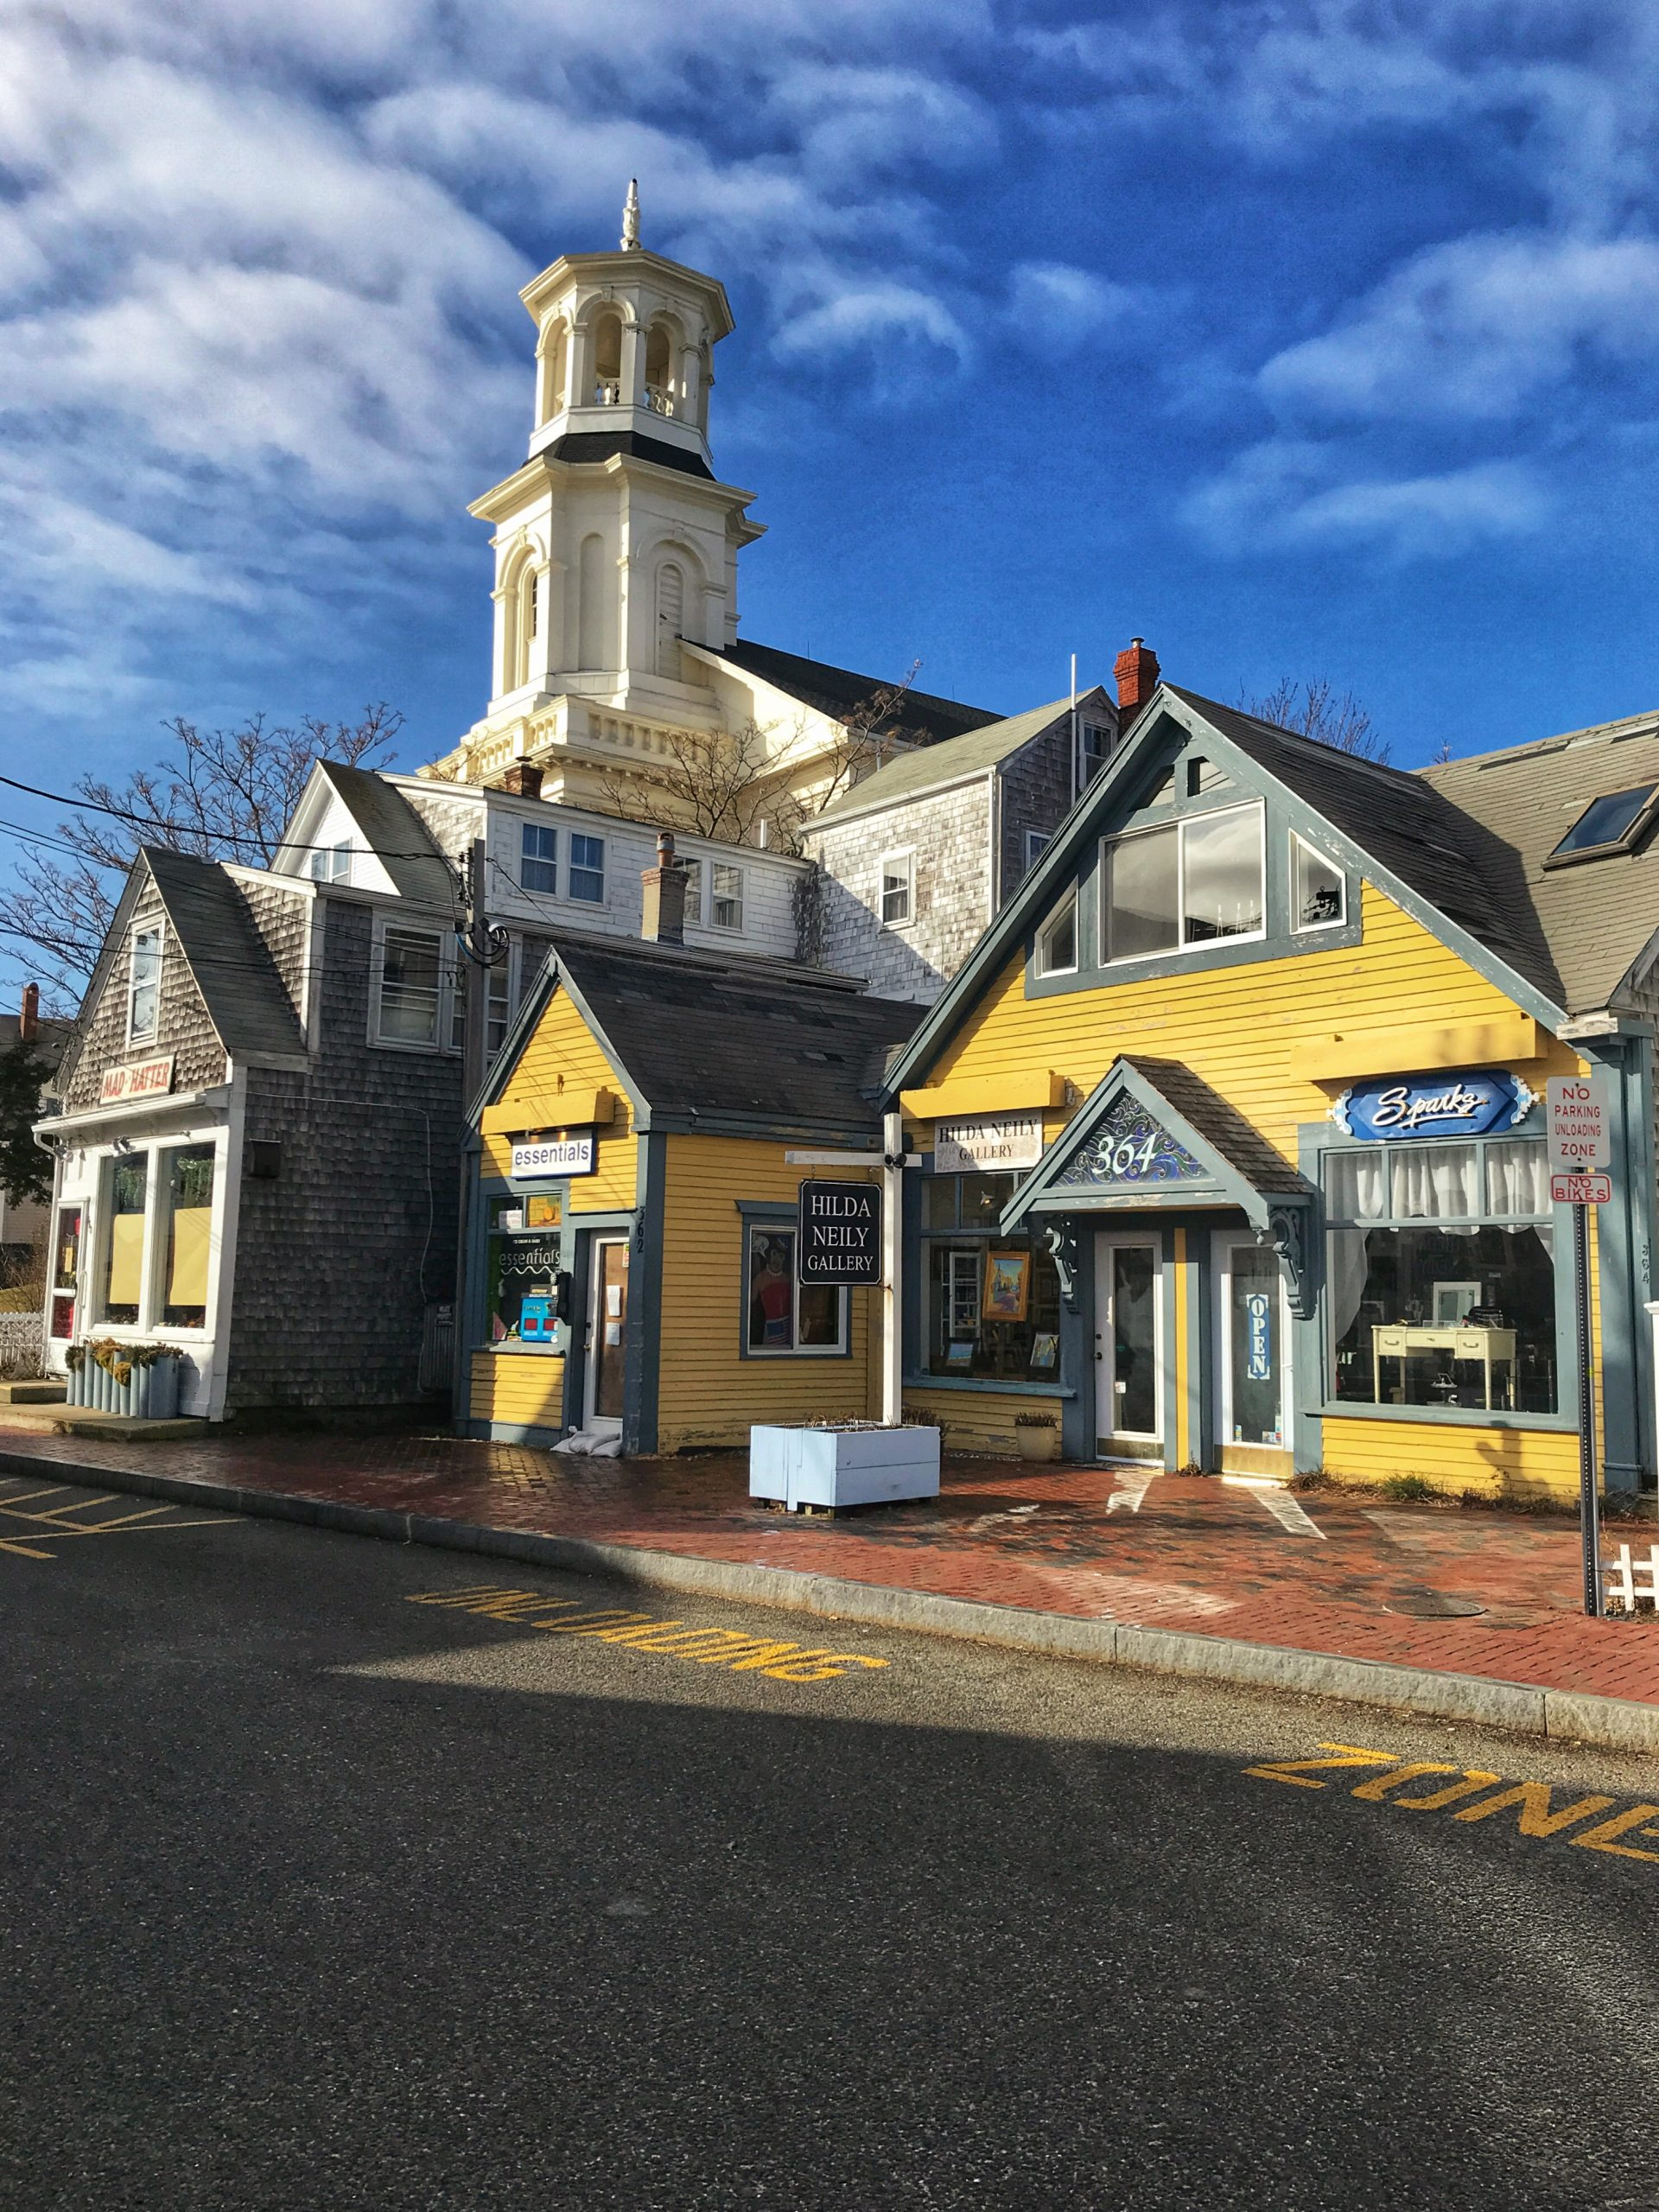 Shops and church on Commercial Street.